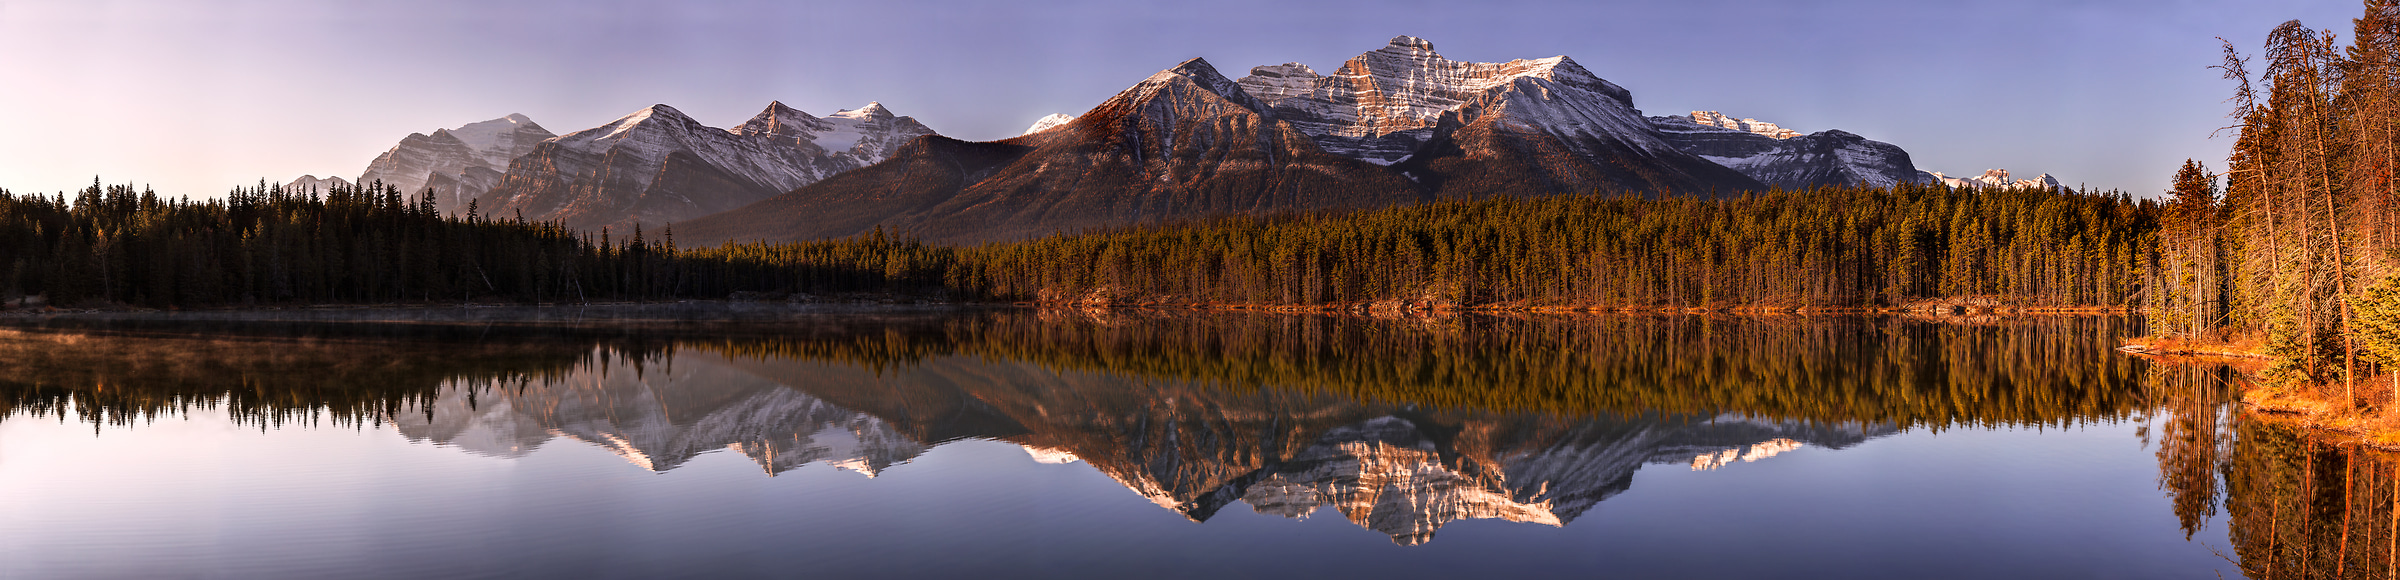 273 megapixels! A very high resolution, large-format VAST photo print of a panorama landscape; photograph created by Chris Collacott in Herbert Lake, Alberta, Canada